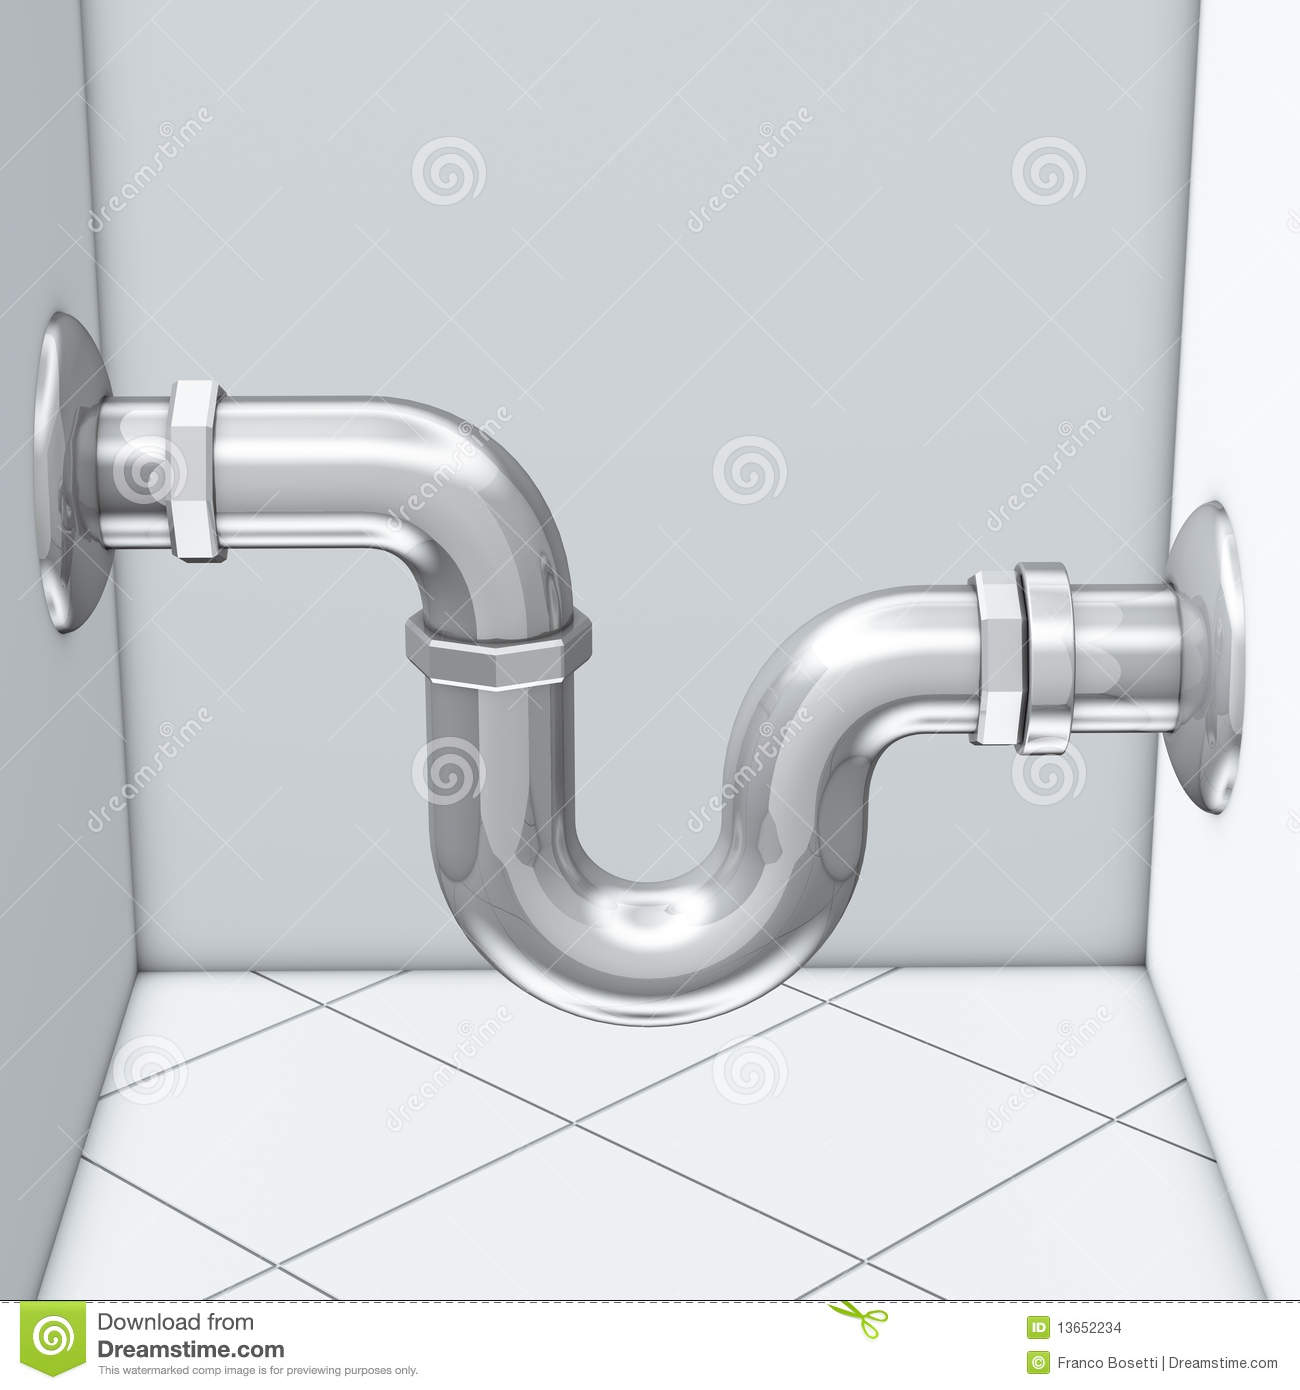 Water Drain Pipe Clipart.